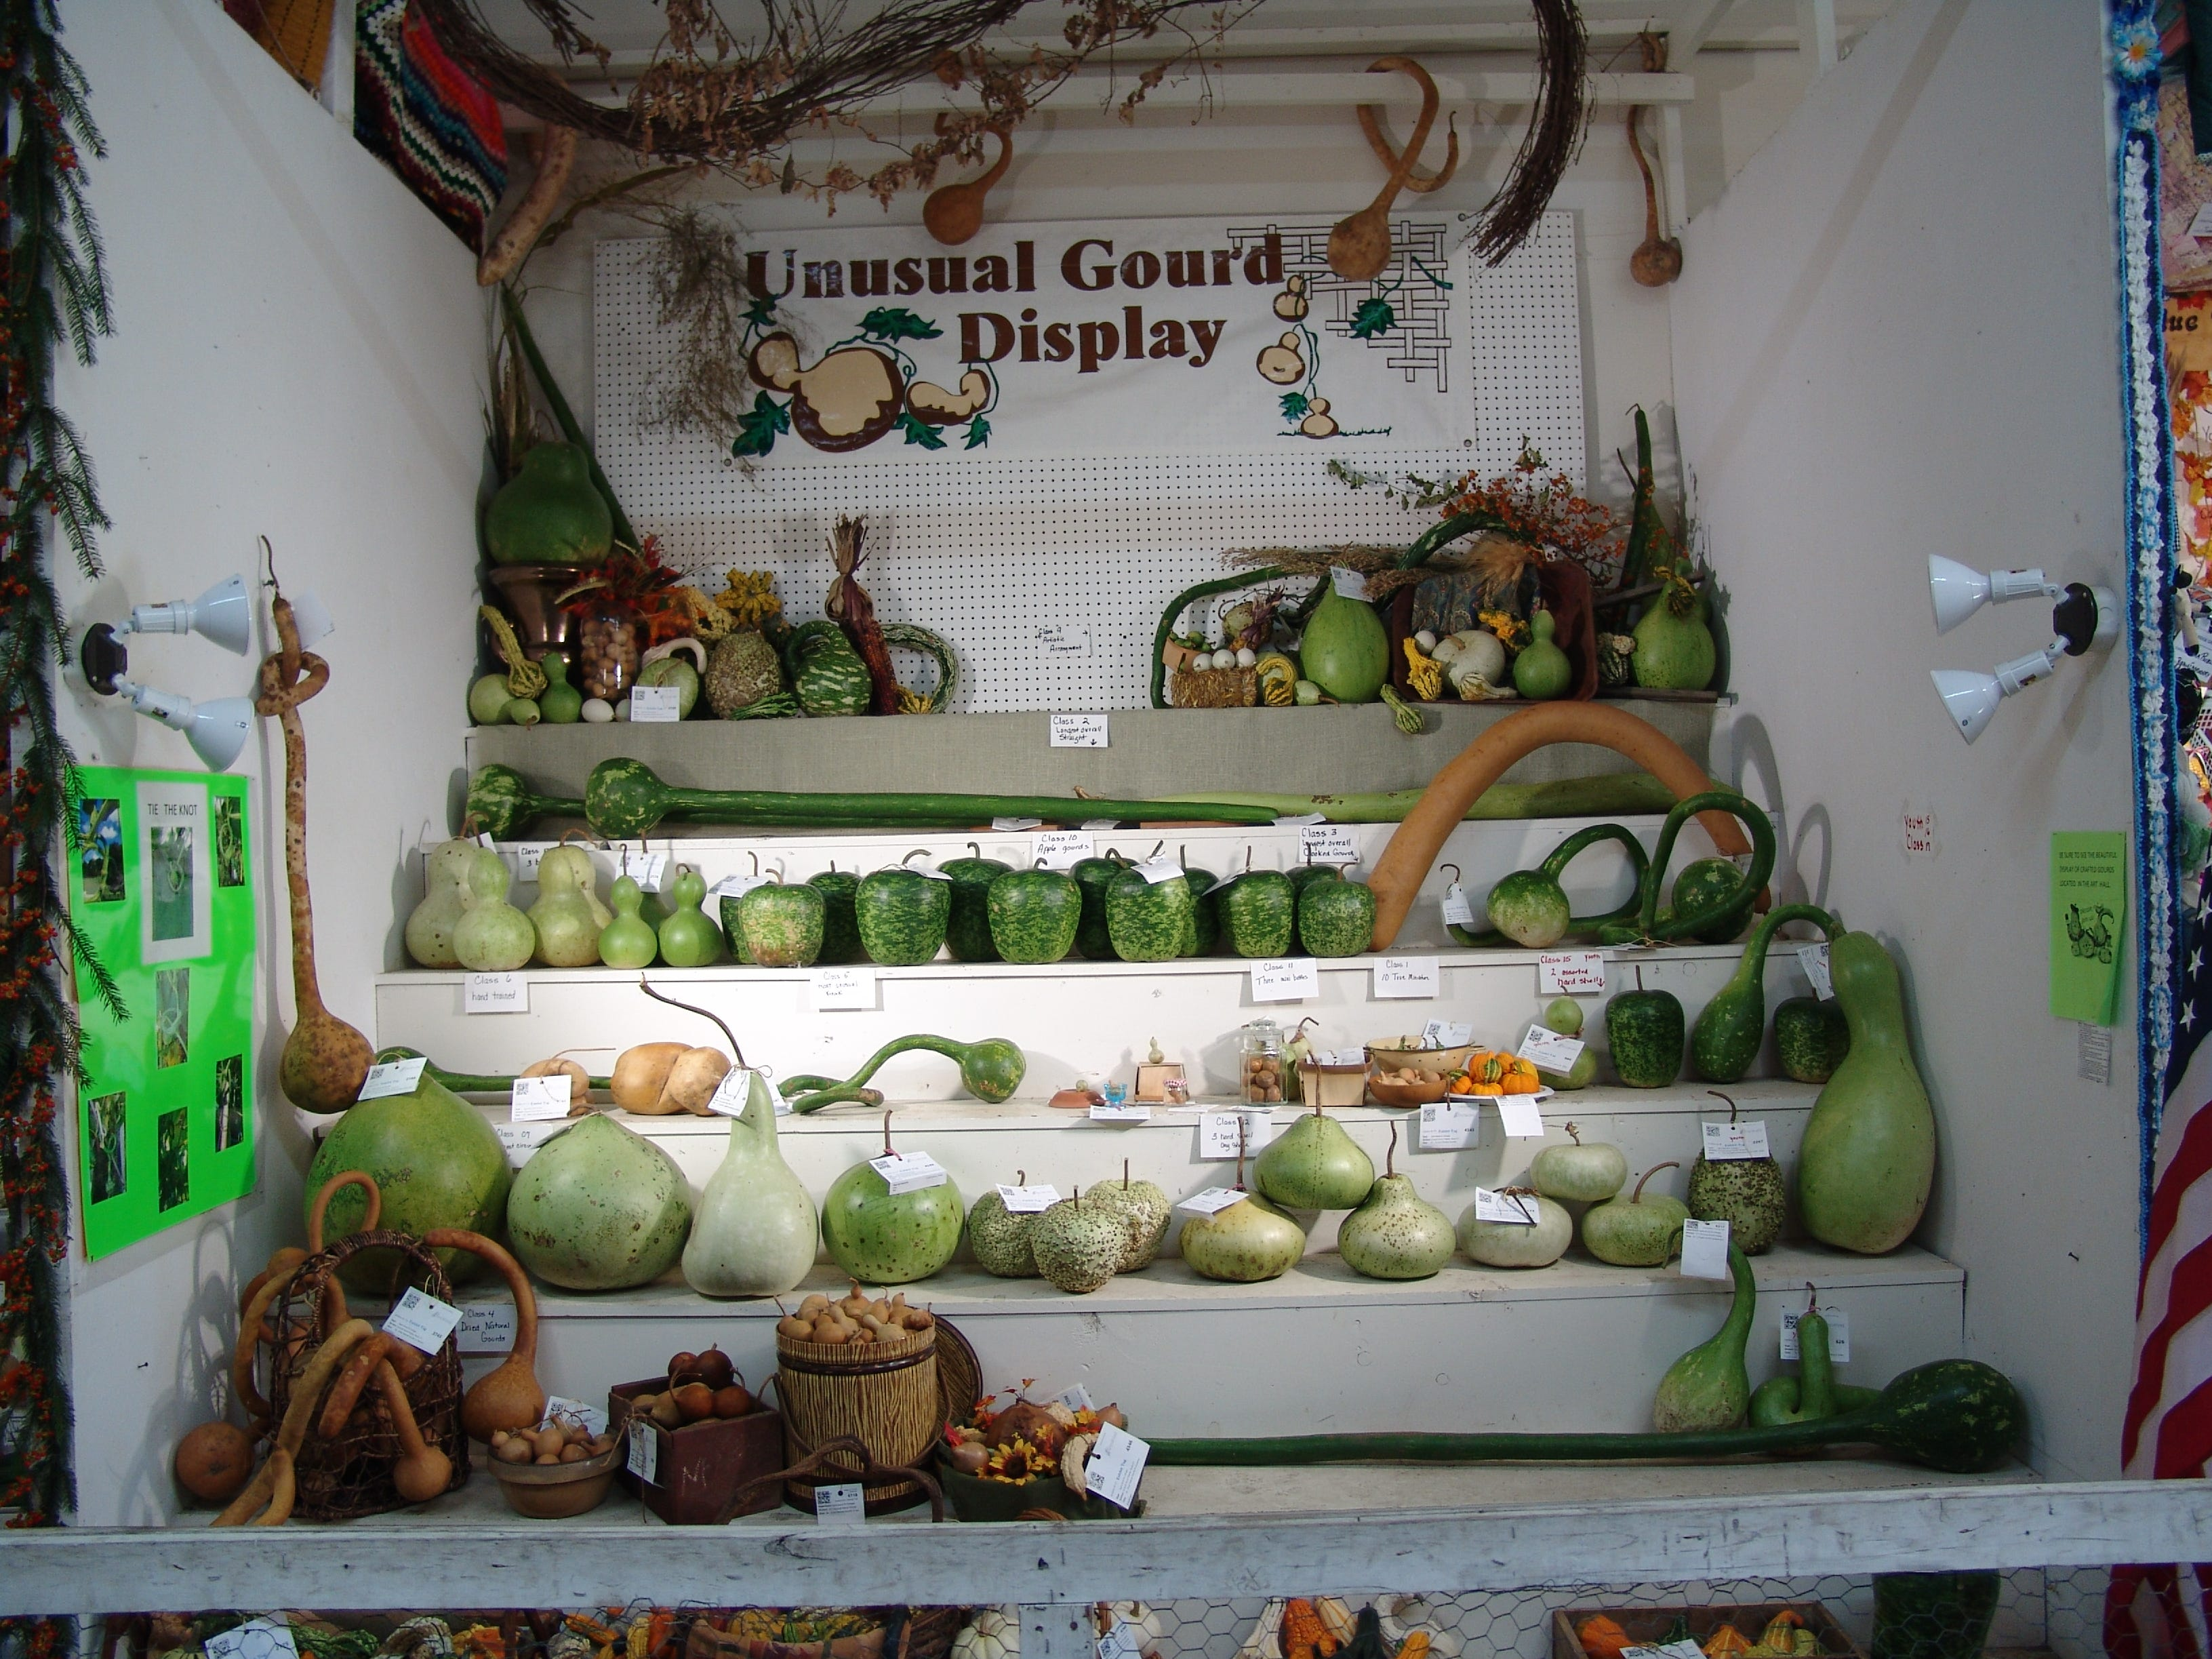 Gourds in the Unusual Gourd Display.